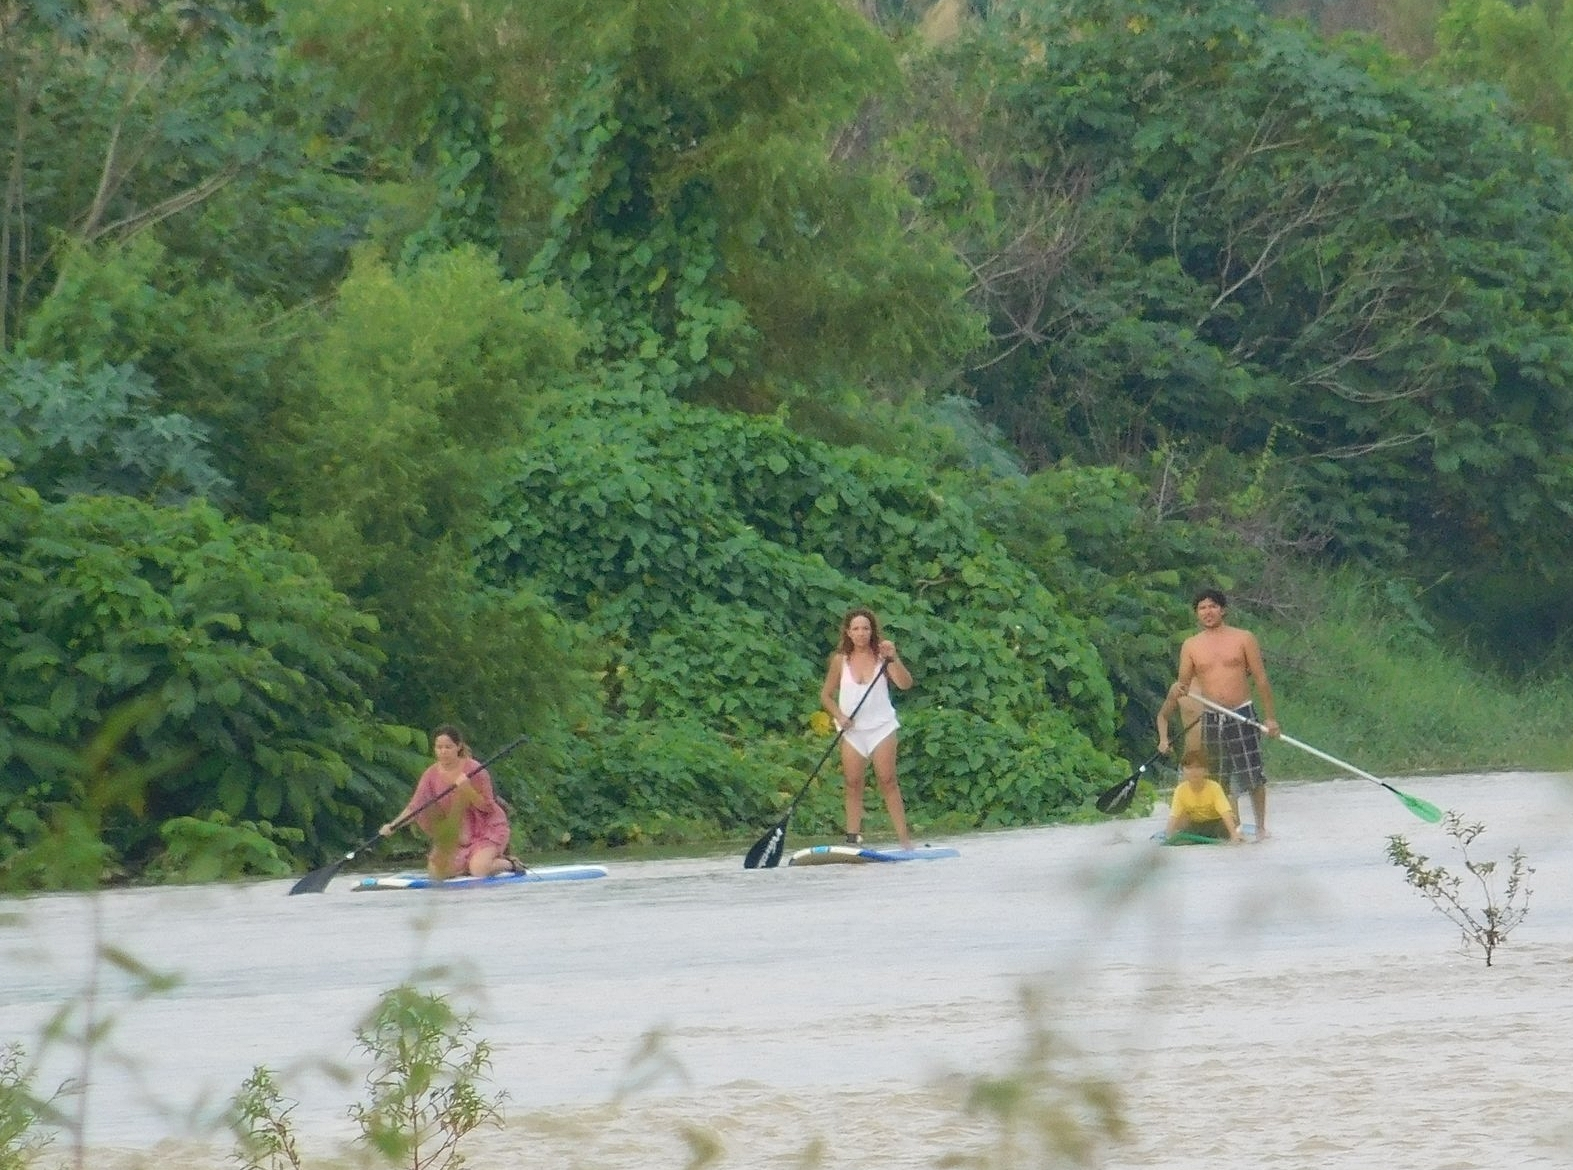 Guided SUP Tour - Balance // Challenge // ExploreStand Up Paddleboarding is a fantastic way to connect with your surroundings.